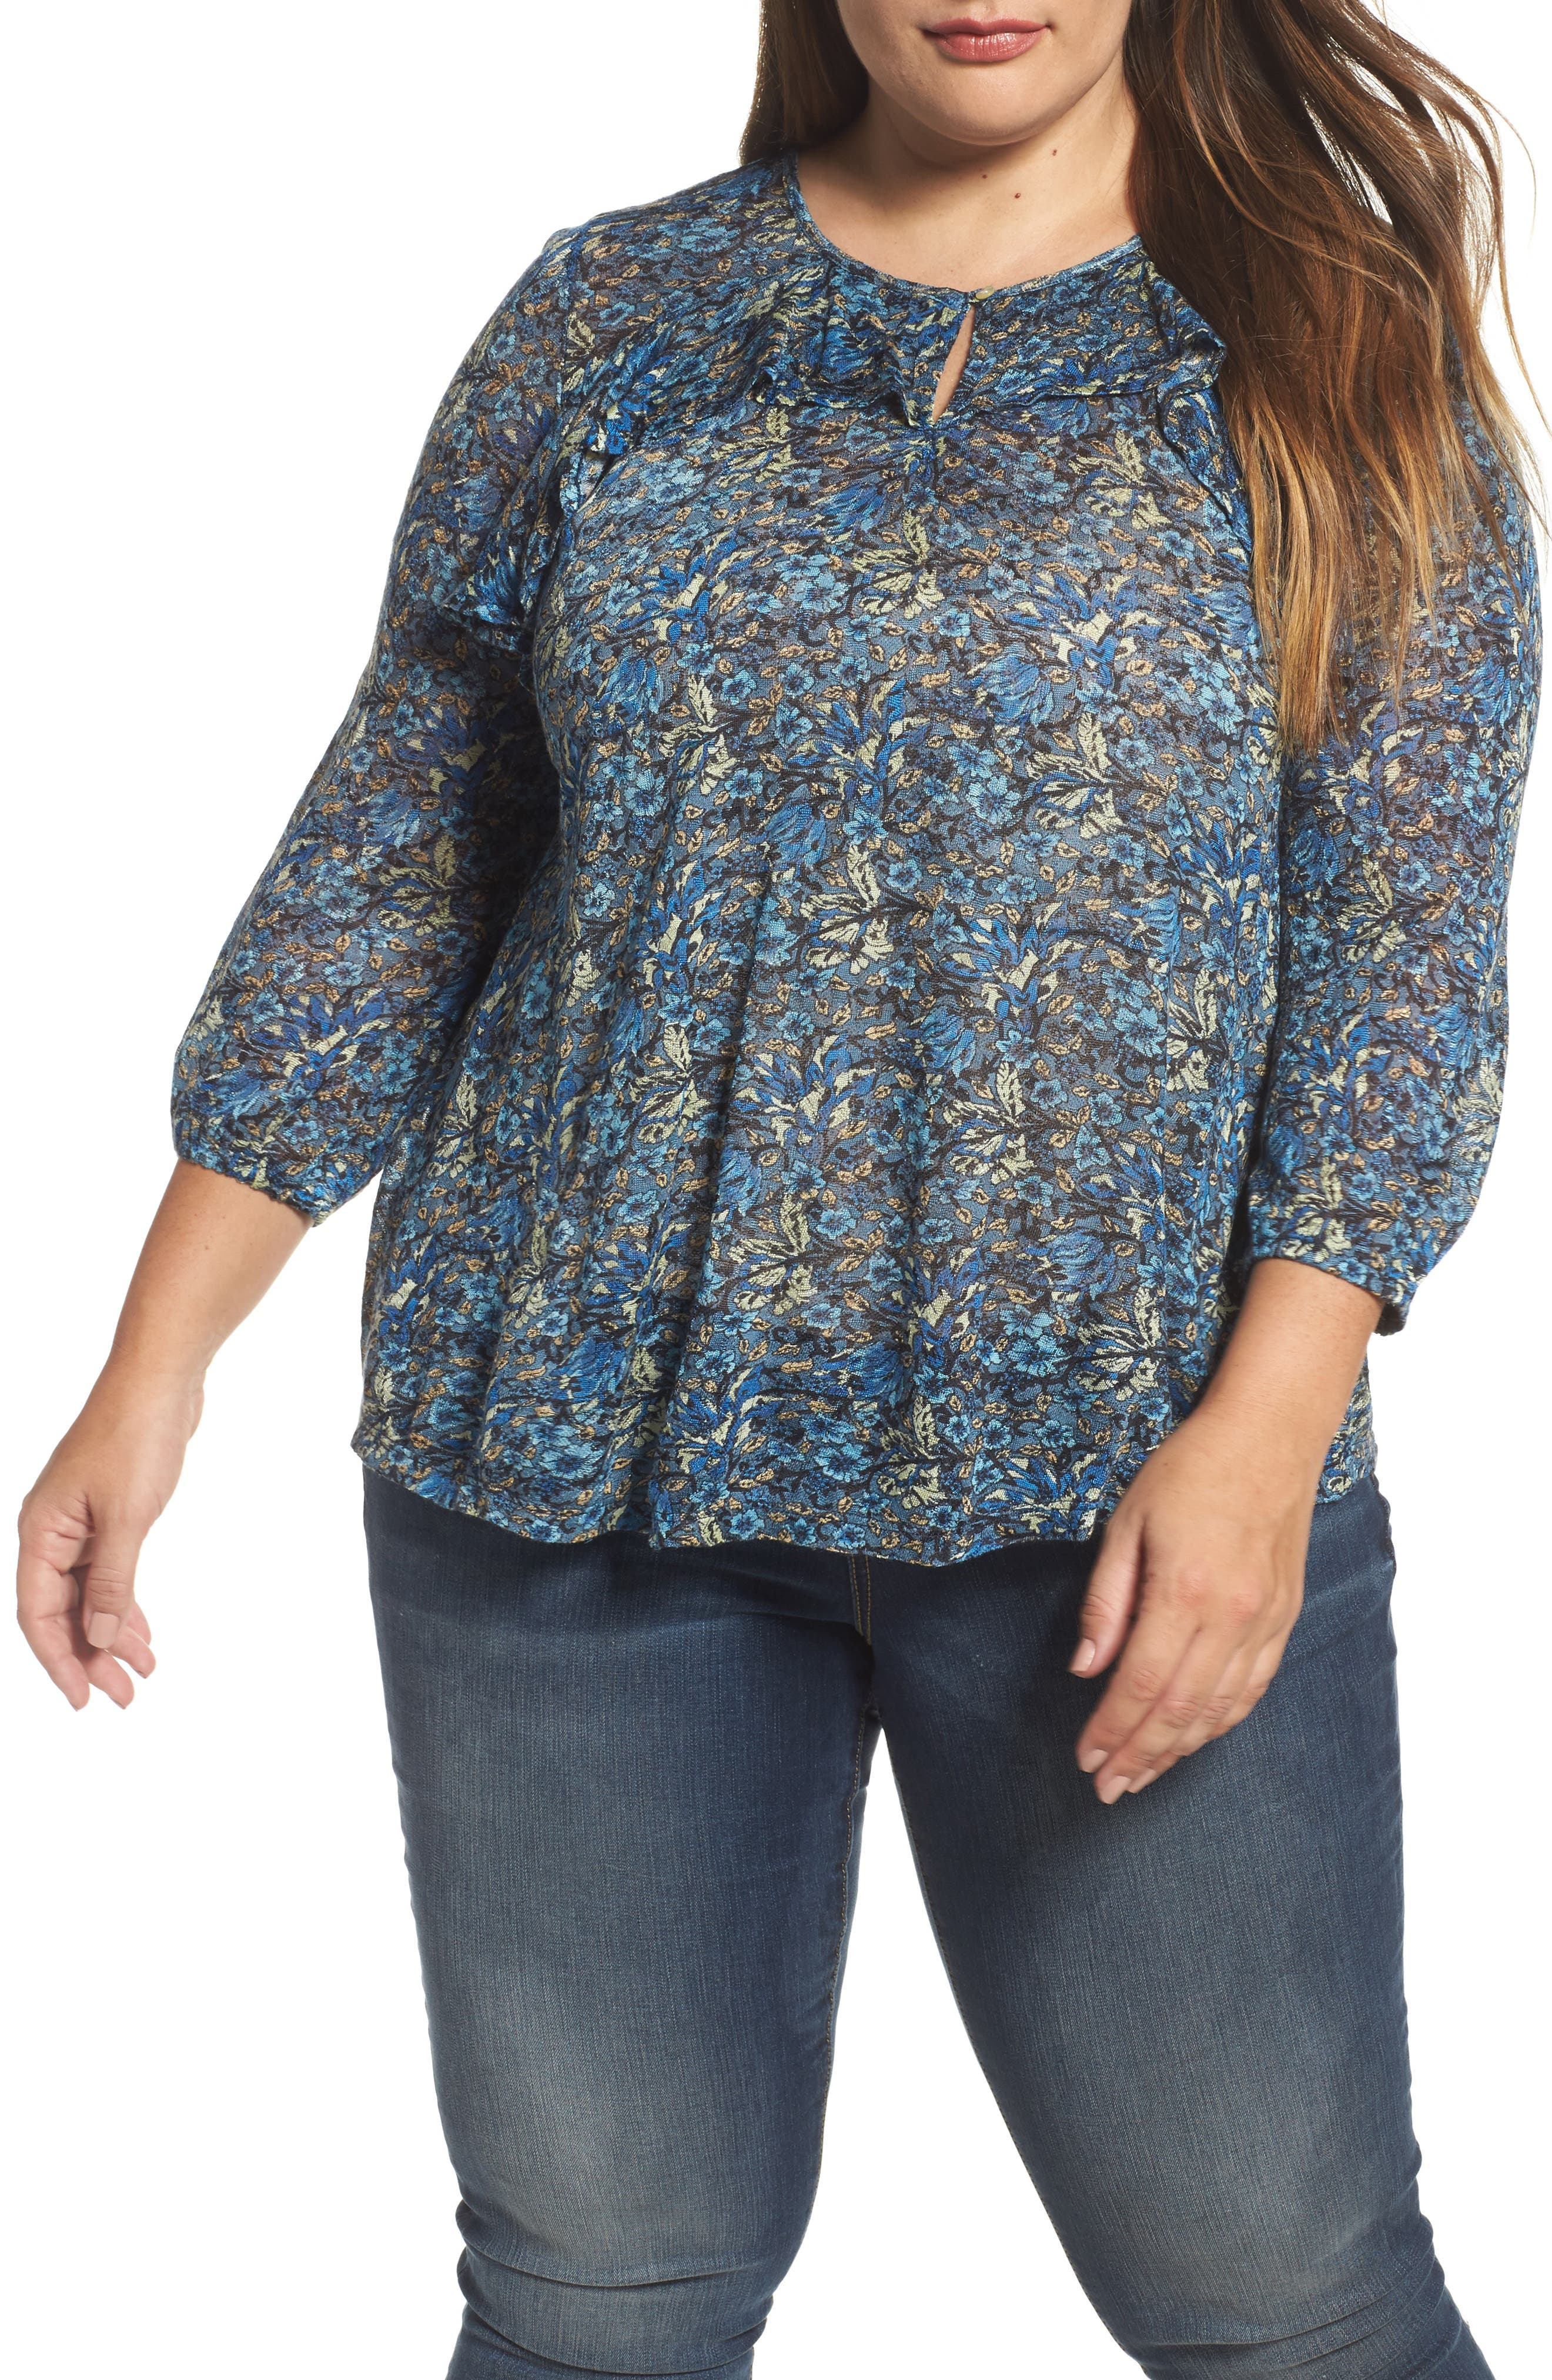 Alternate Image 1 Selected - Lucky Brand Ruffle Trim Floral Top (Plus Size)